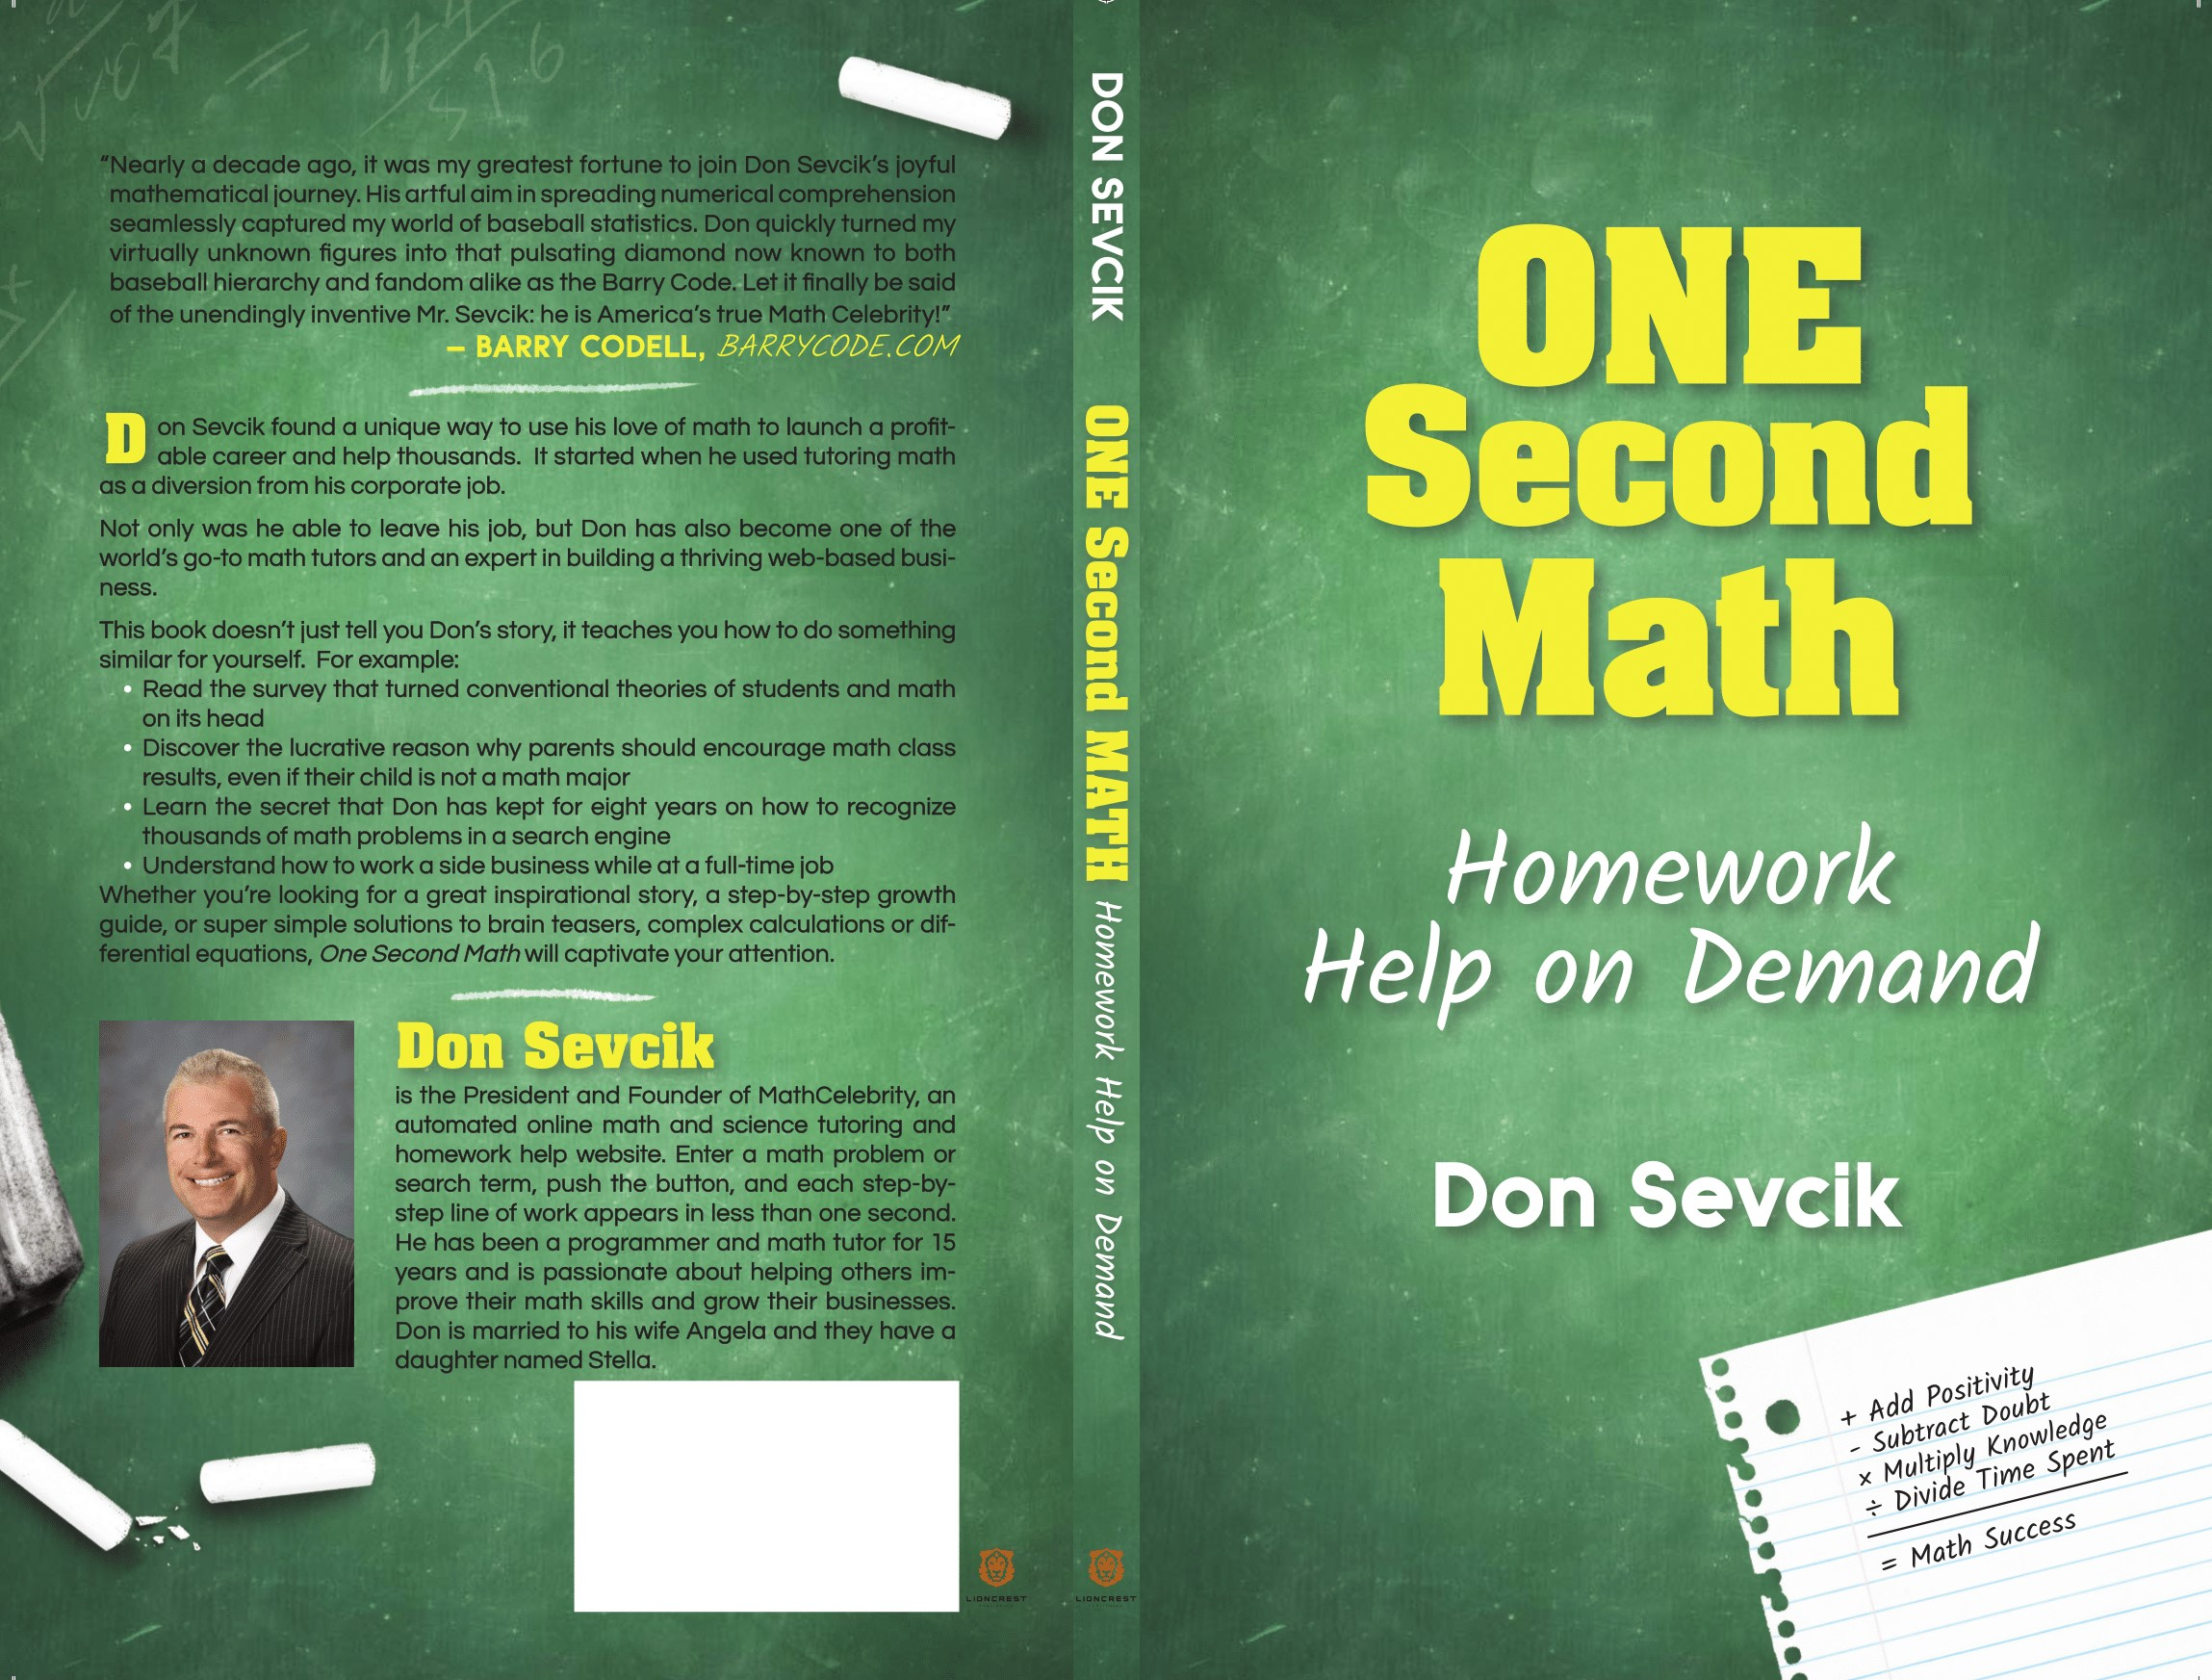 One Second Math Book